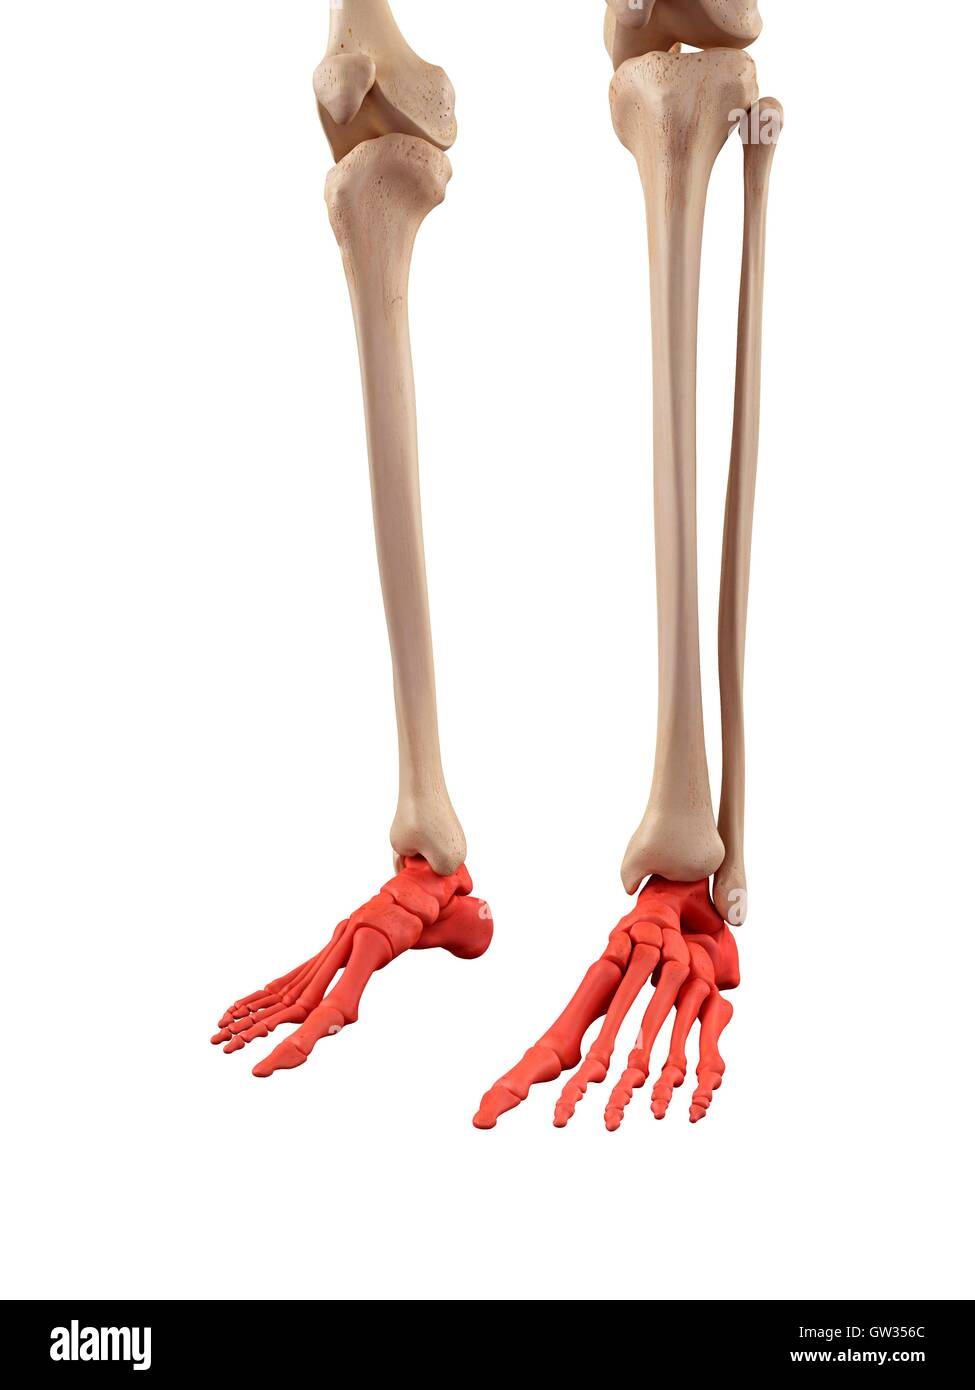 Anatomy Bones Feet Stockfotos & Anatomy Bones Feet Bilder - Alamy